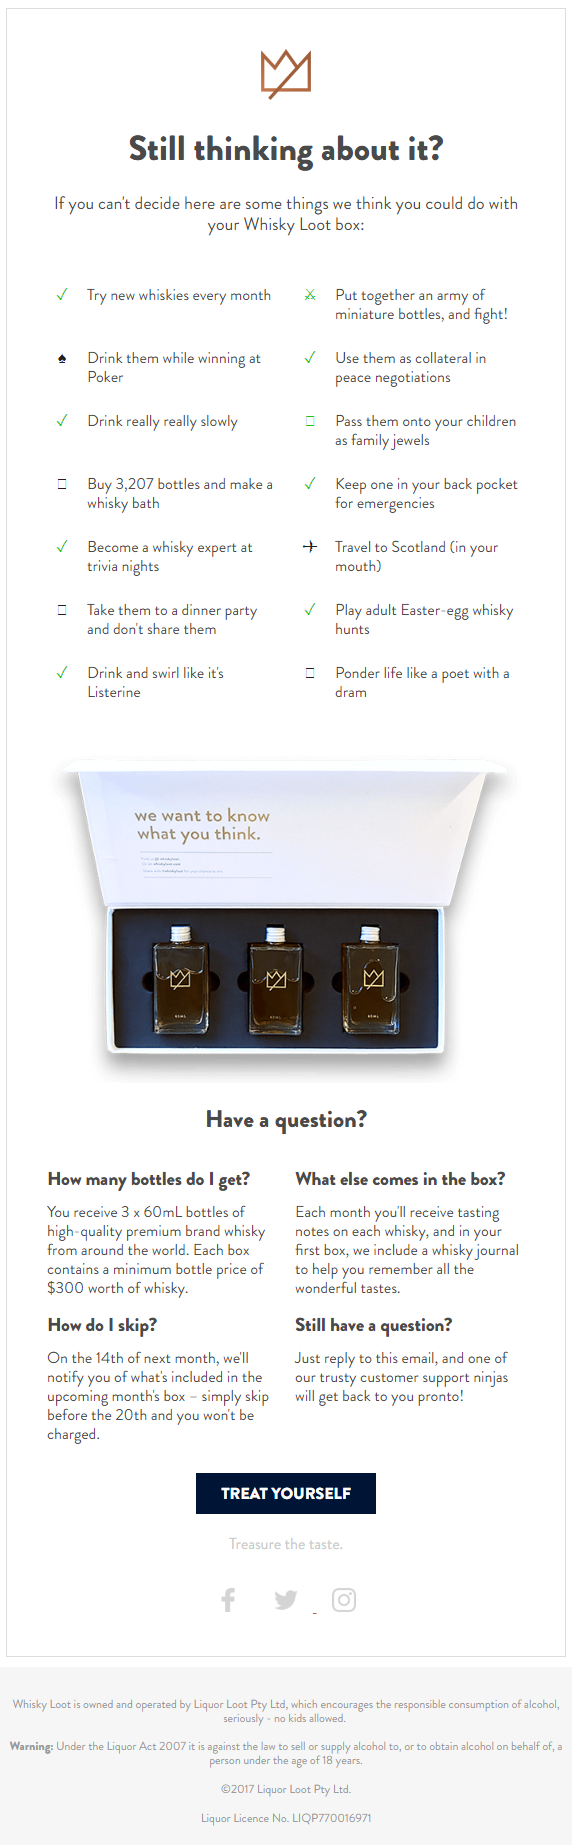 Humor in email marketing - Whisky Loot